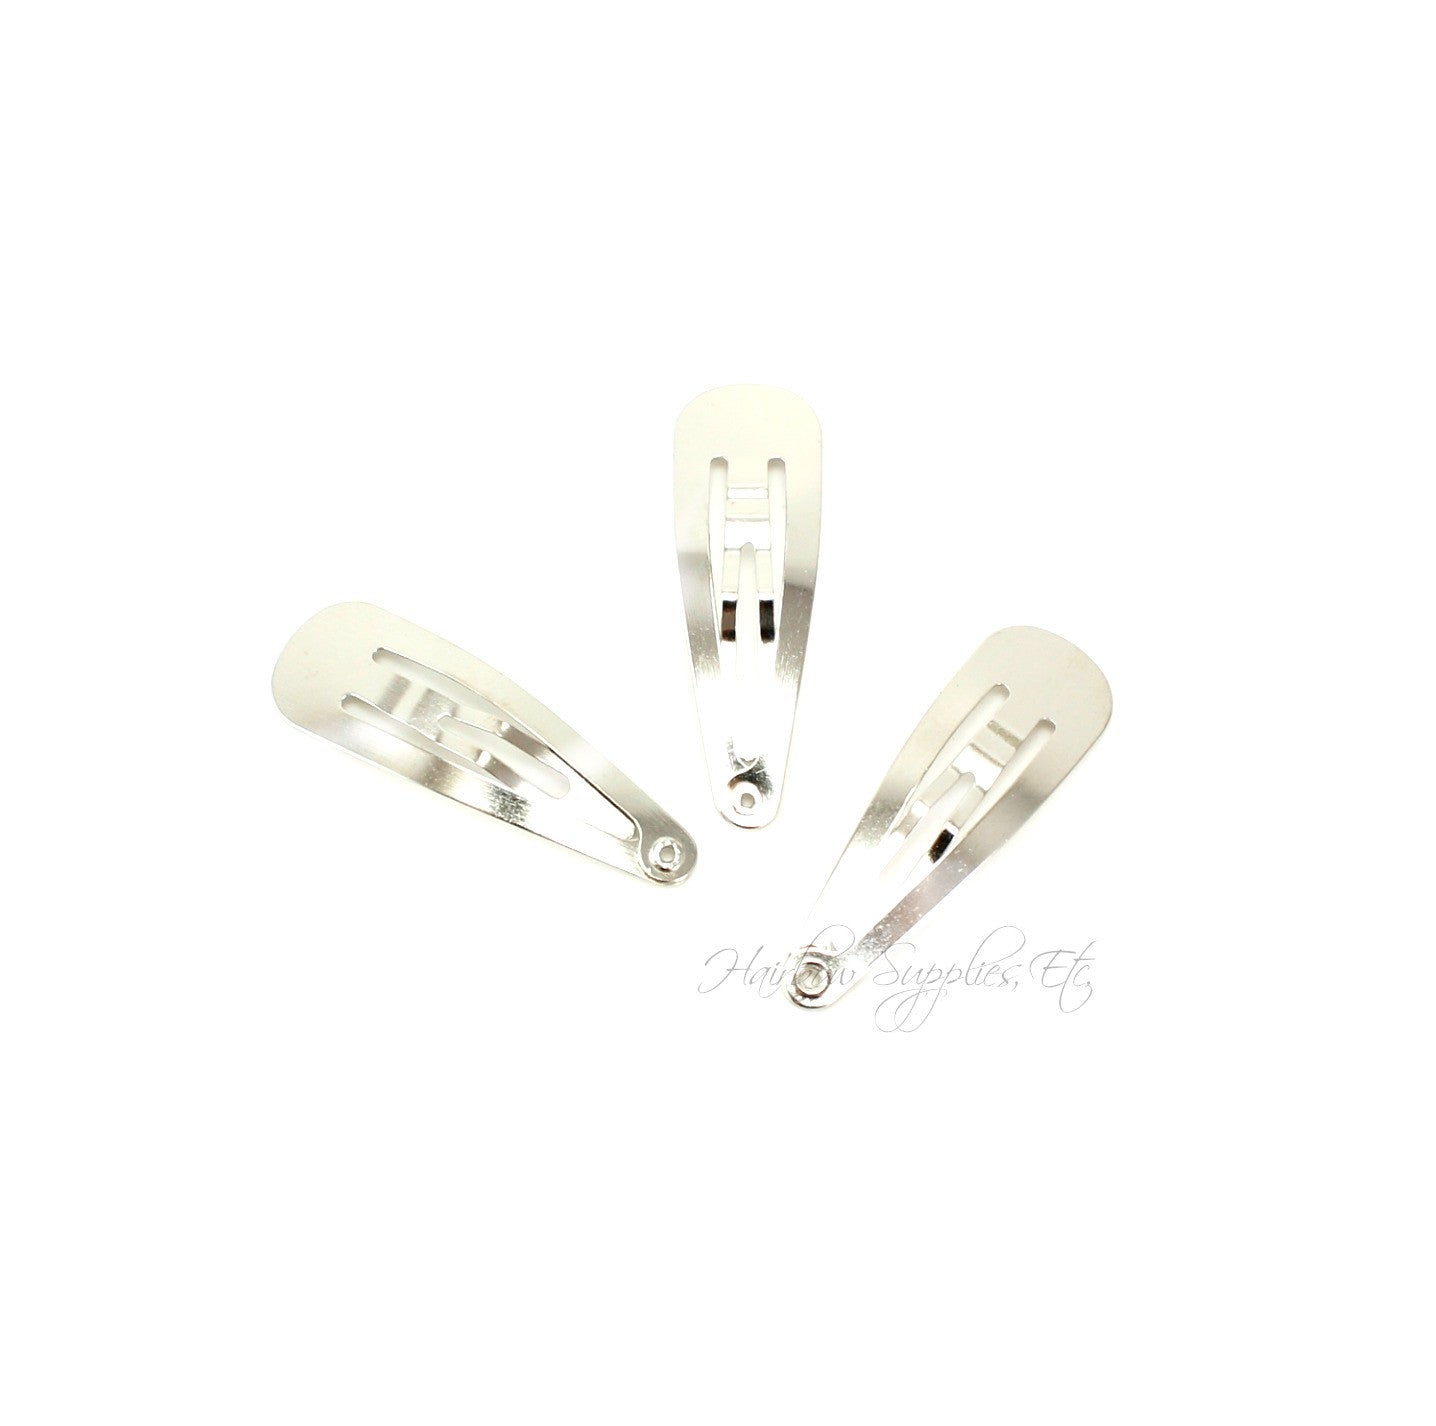 40 mm 1-1/2 inch snap clips (50 qty)